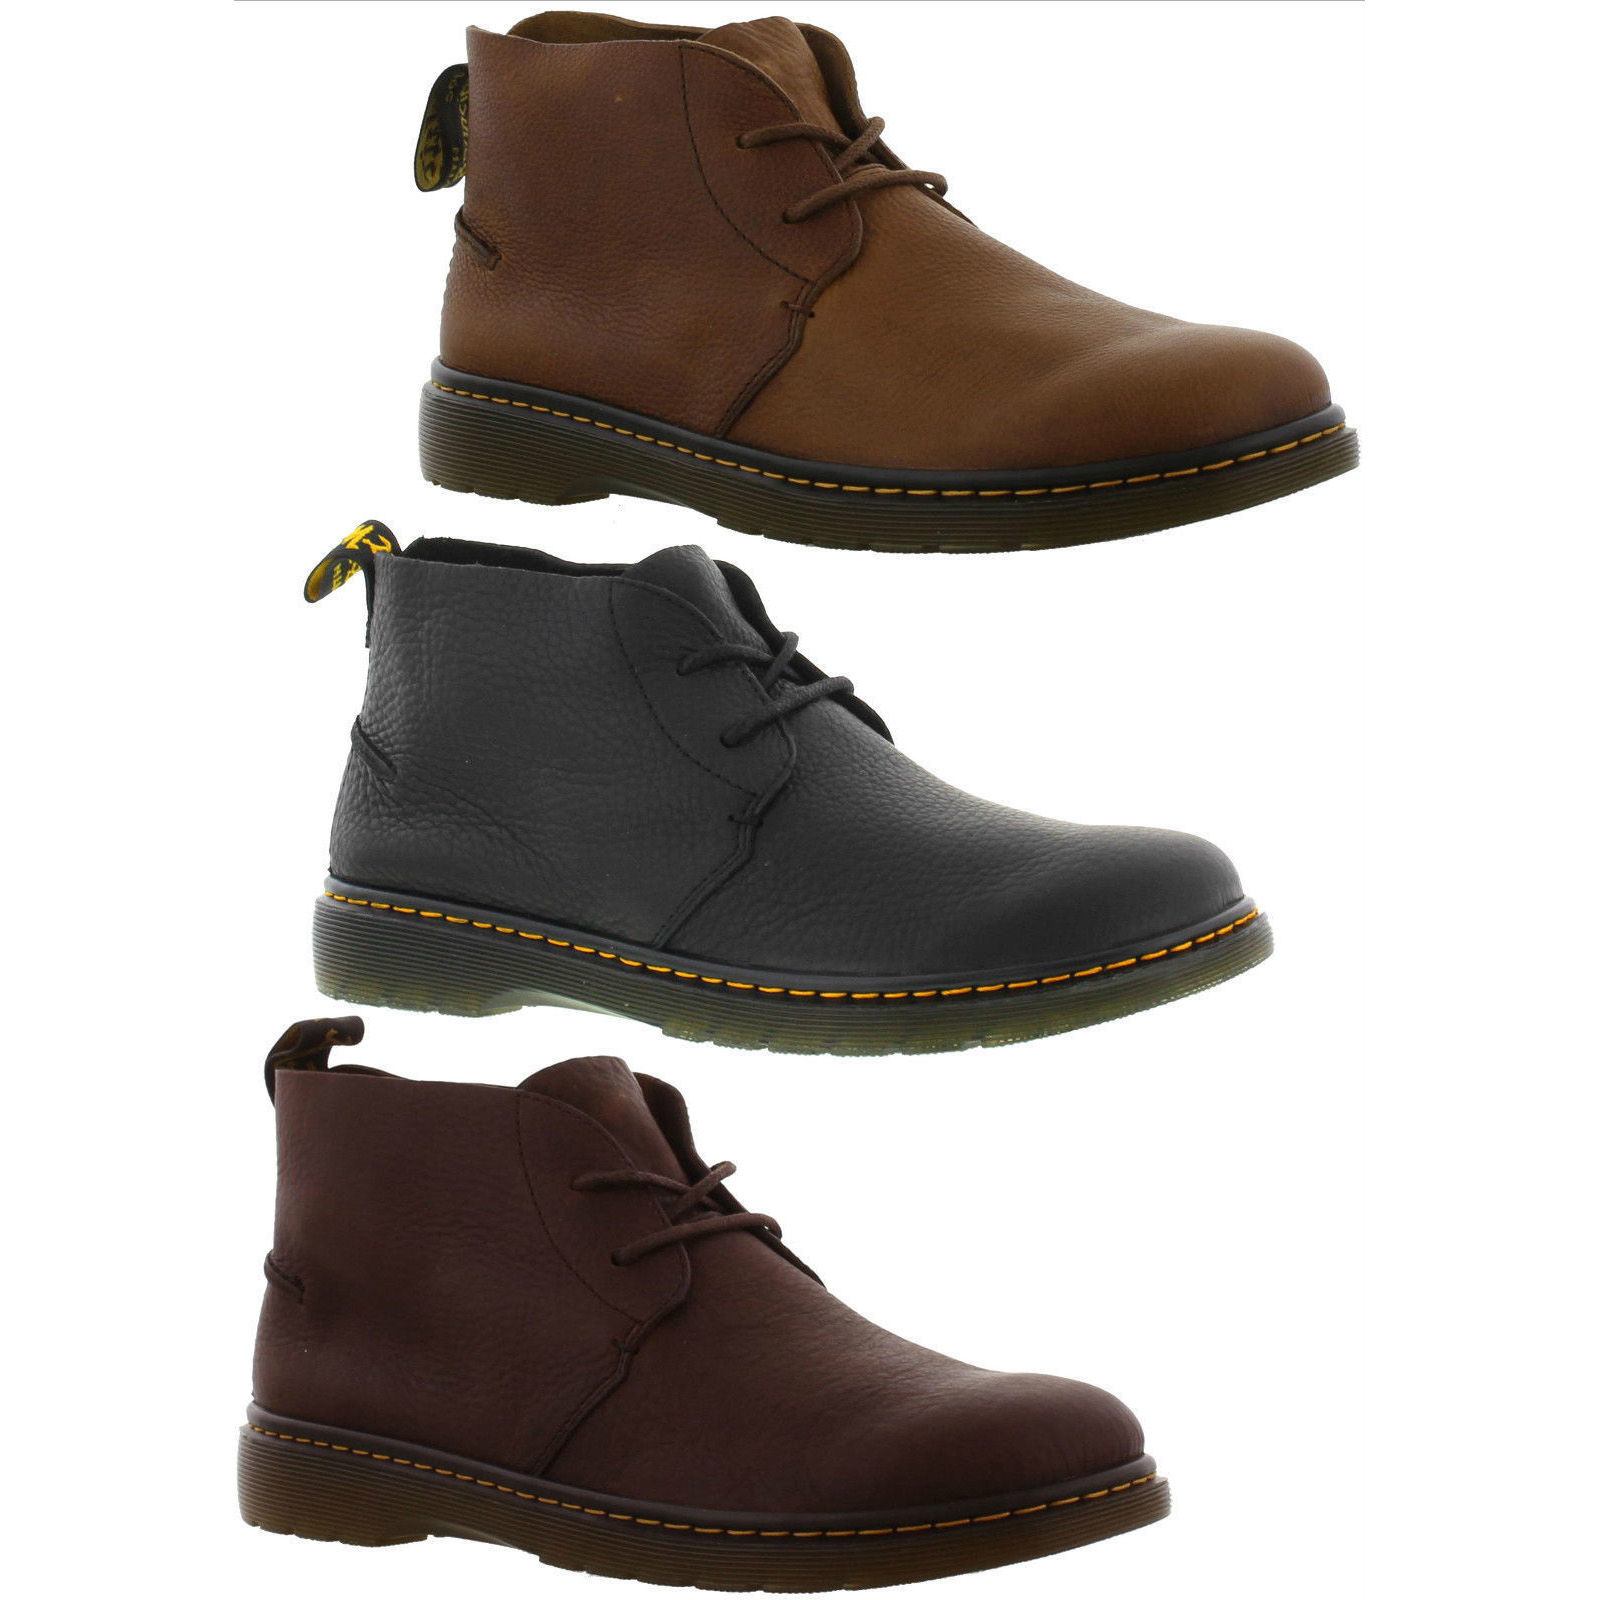 72282a52 Dr Martens Ember Mens Black Brown Leather Chukka Boots Size UK 8-13   eBay